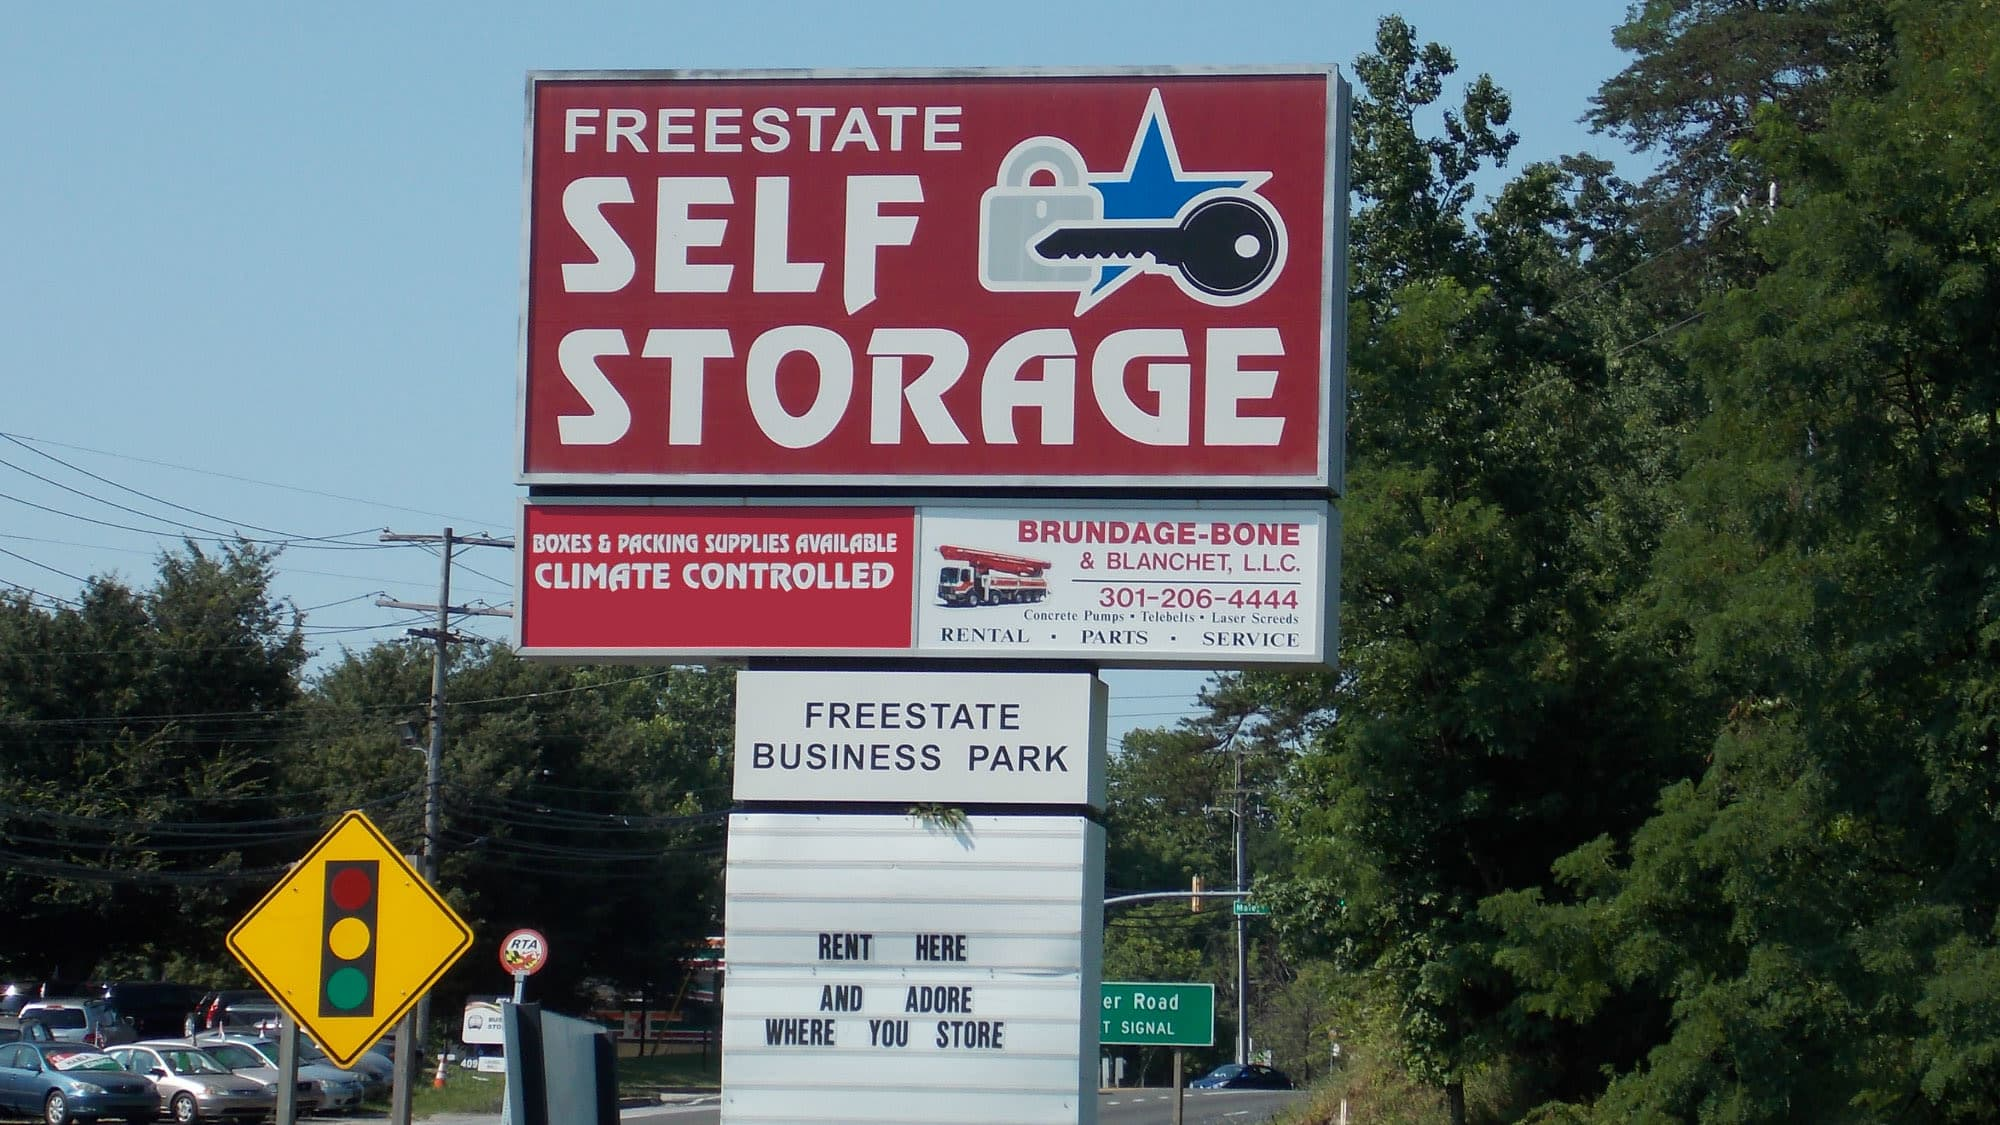 Welcome sign at Freestate Self Storage in Laurel, Maryland